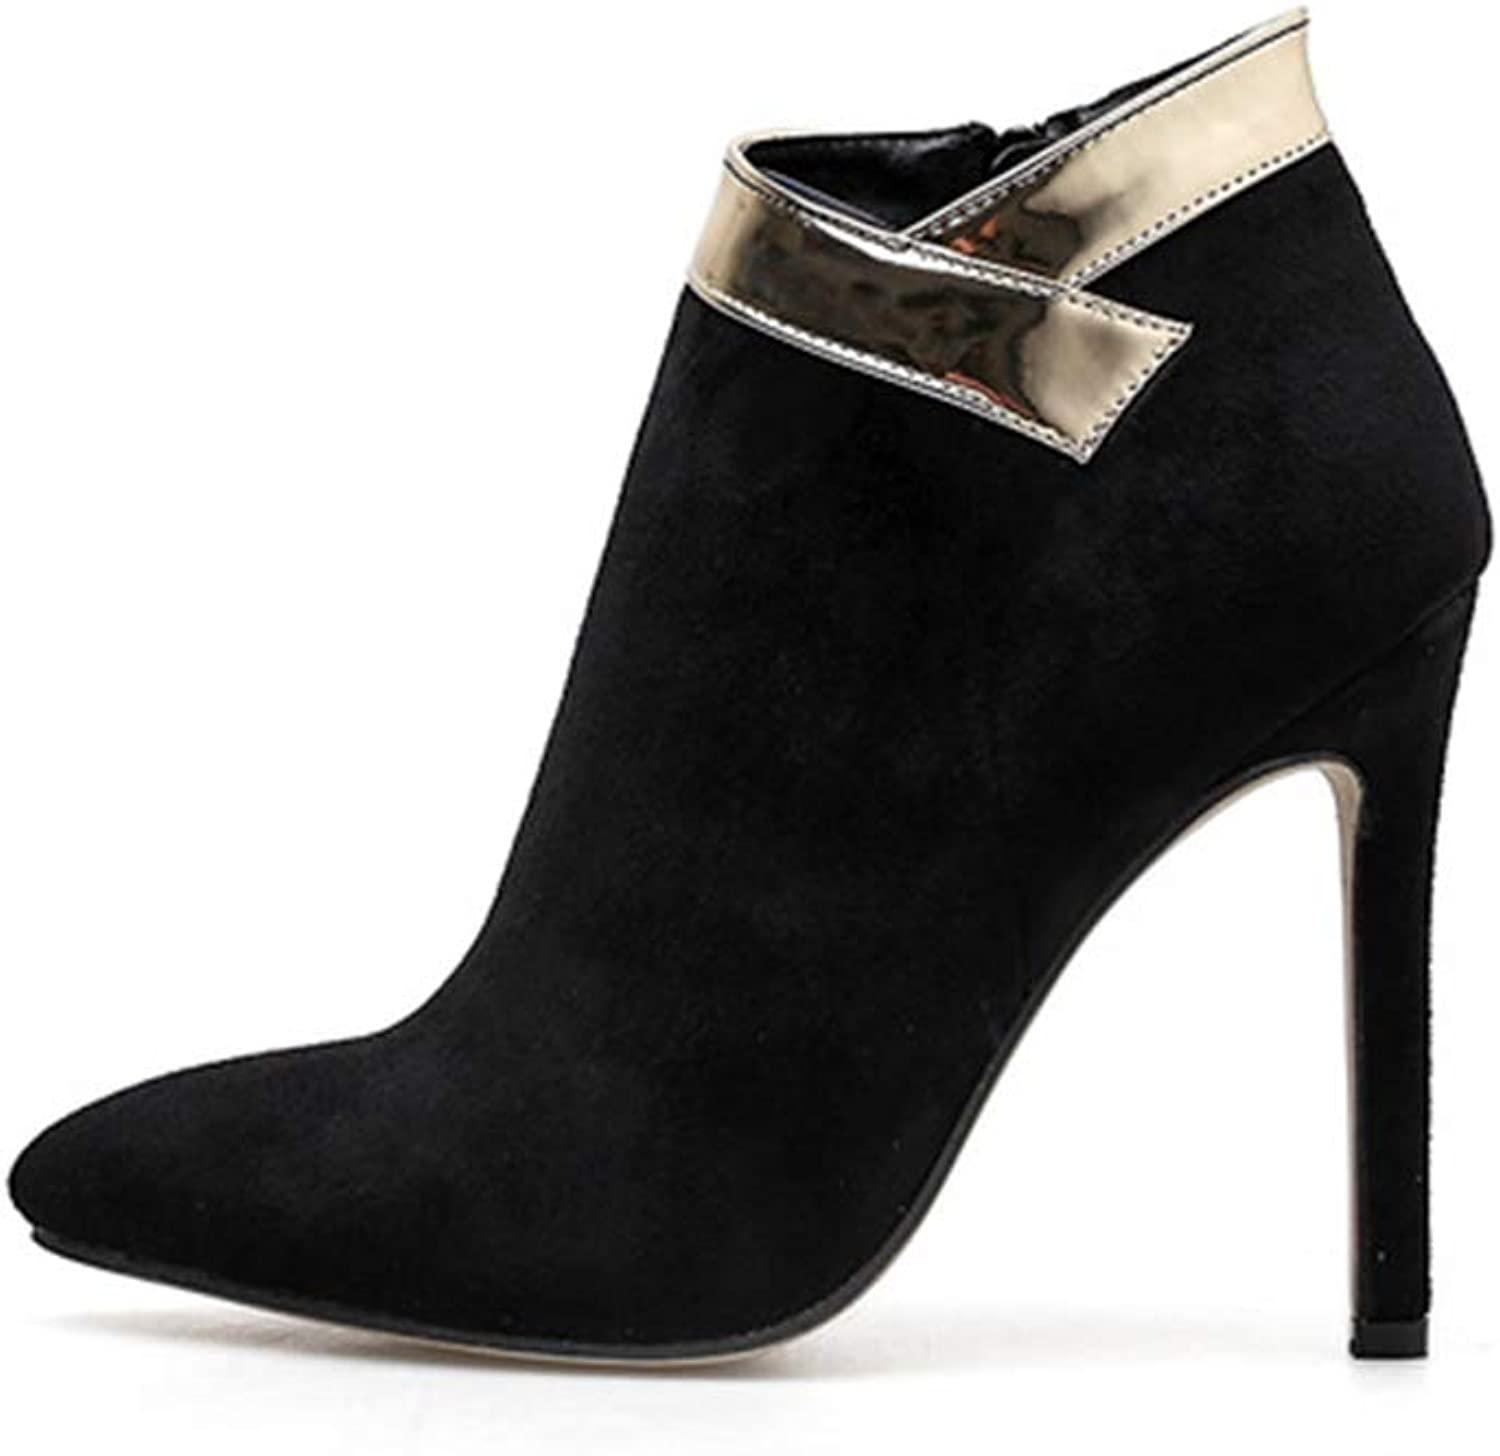 Women's Fashion shoes Suede Fall & Winter Pointed High Stiletto shoes Phnom Penh Bare Boots Wedding Party & Evening (color   Black, Size   37)